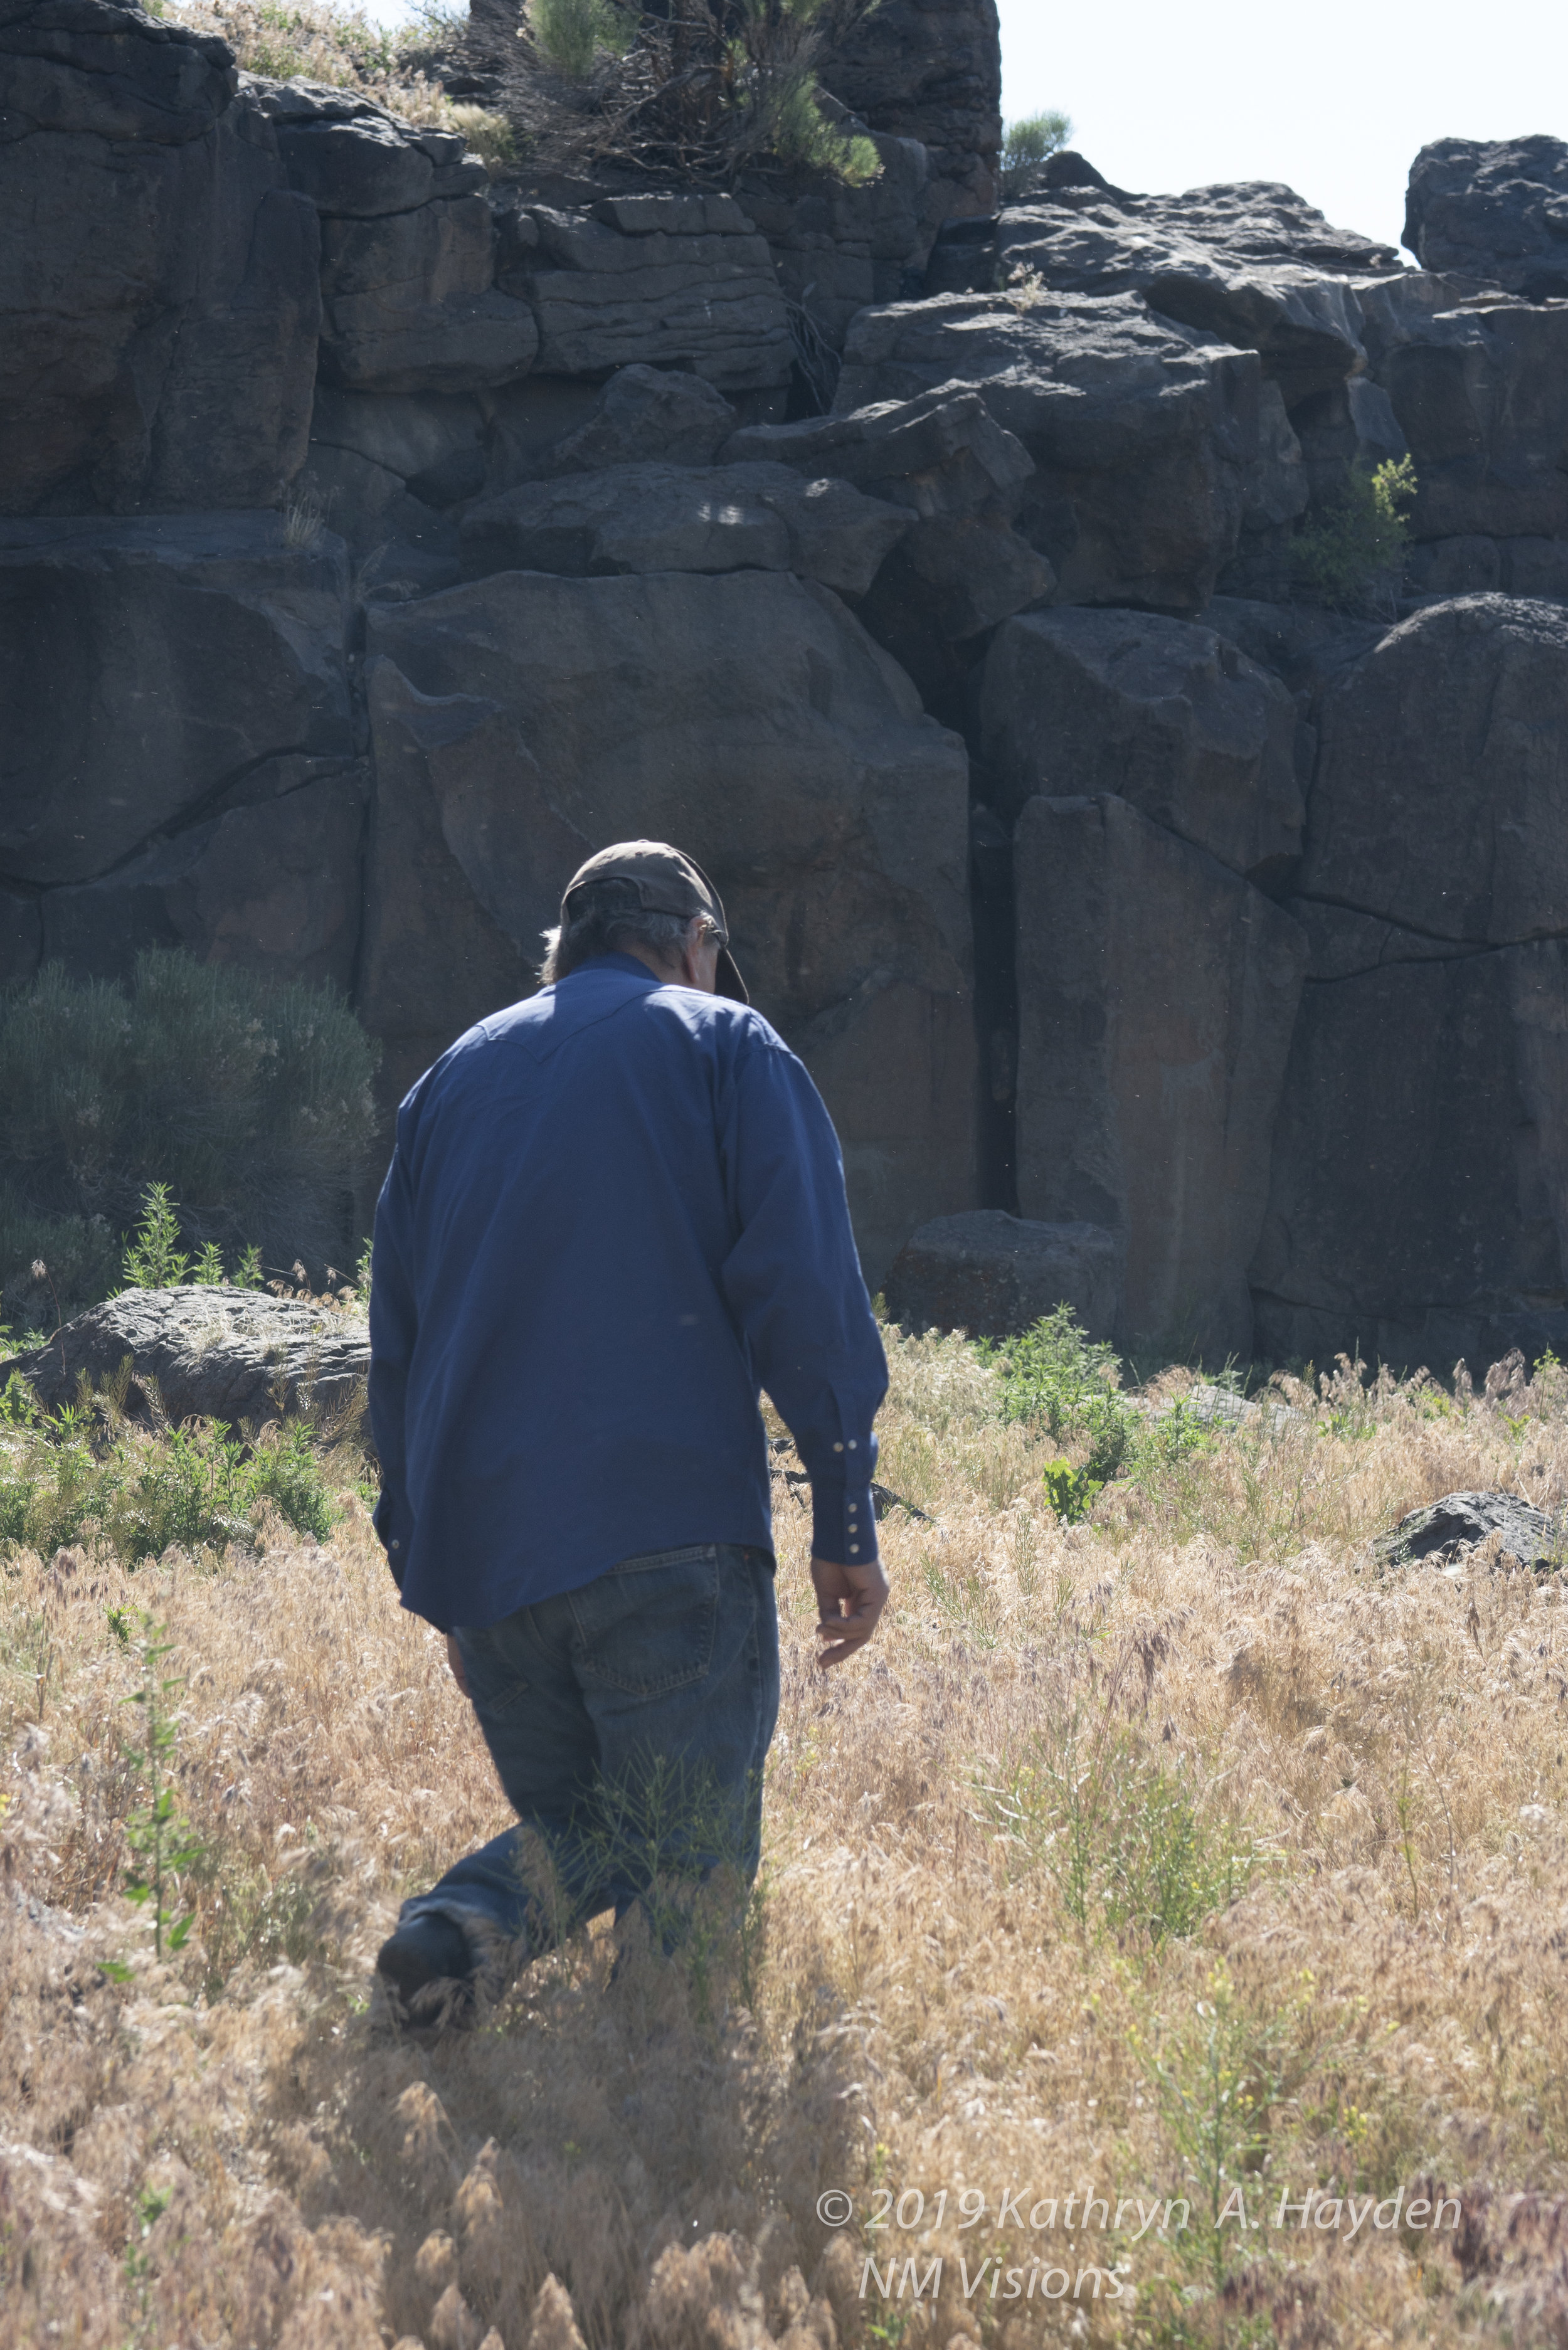 Robert leads group to series of petroglyphs along the rock face.